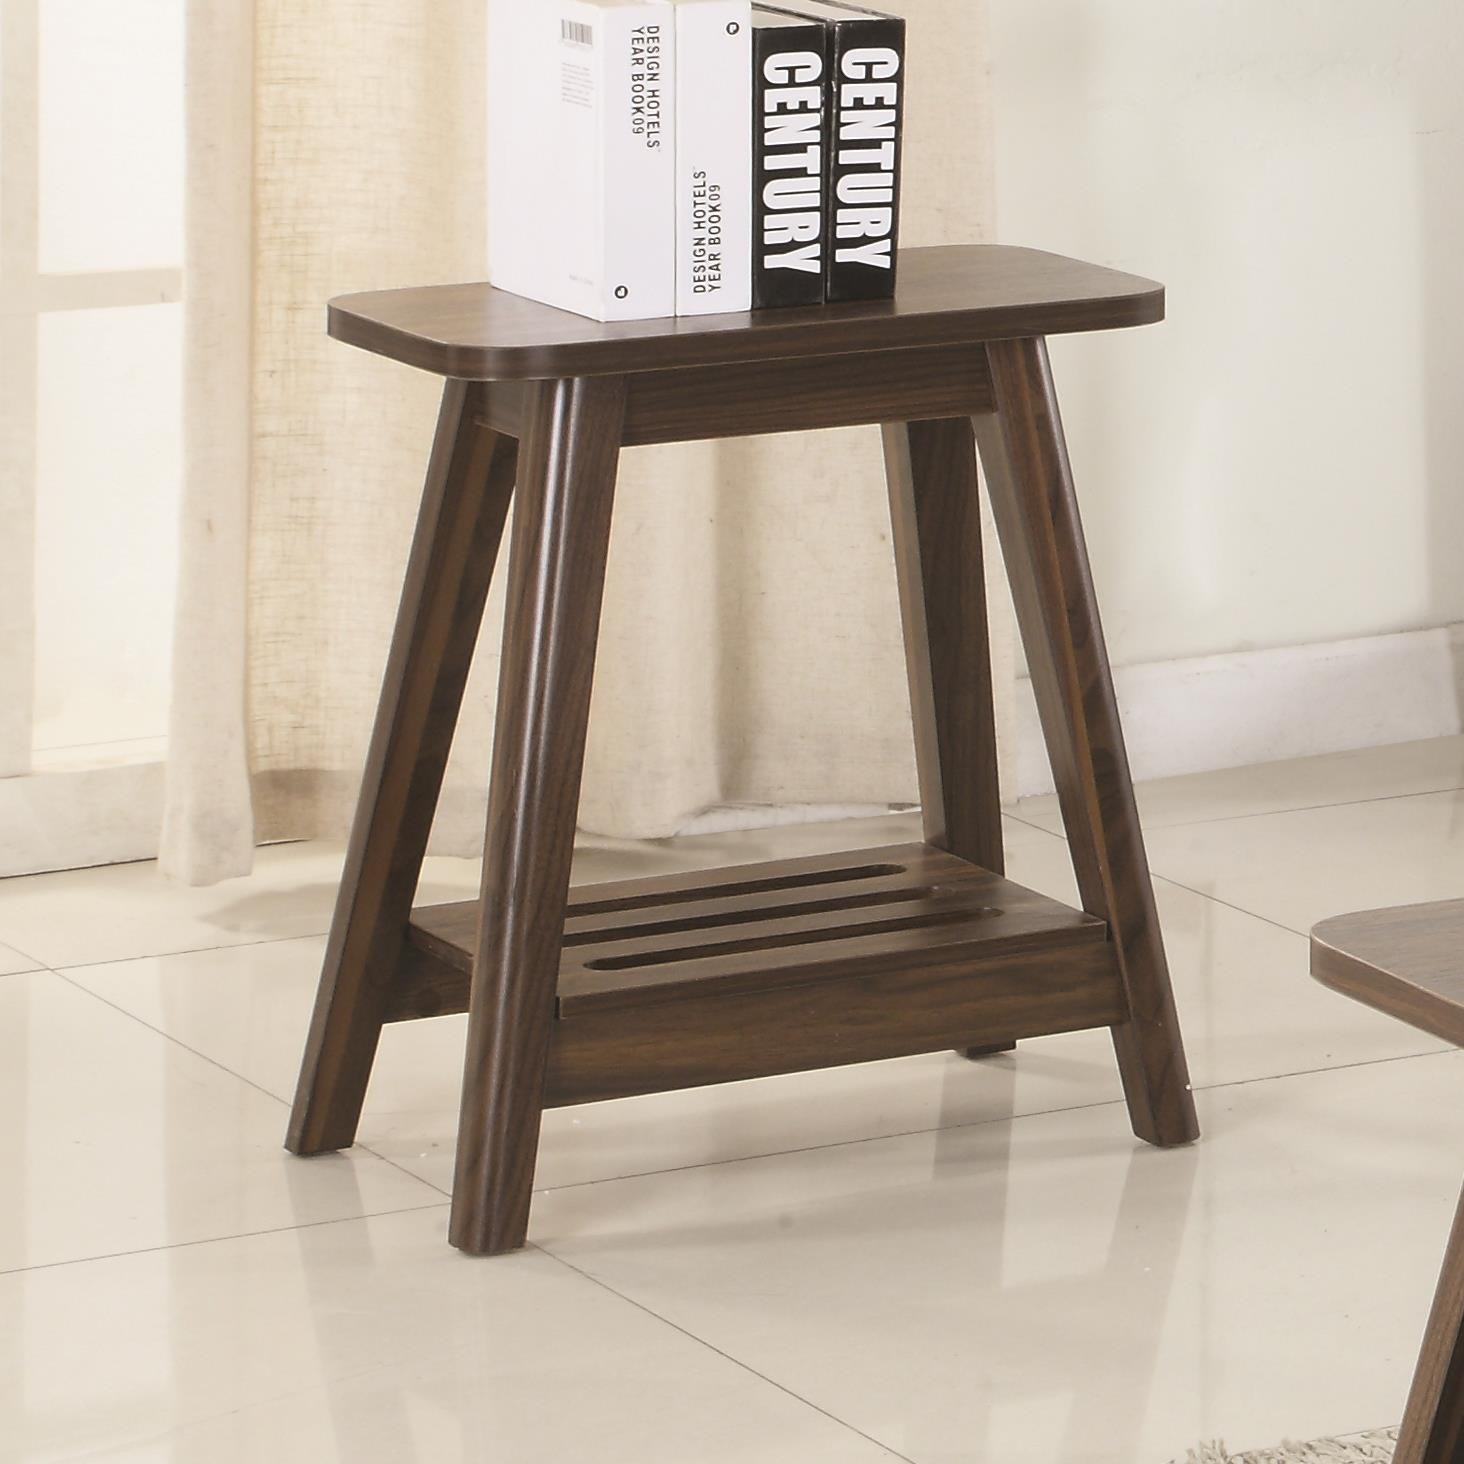 Coaster 72055 Accent Table - Item Number: 720556